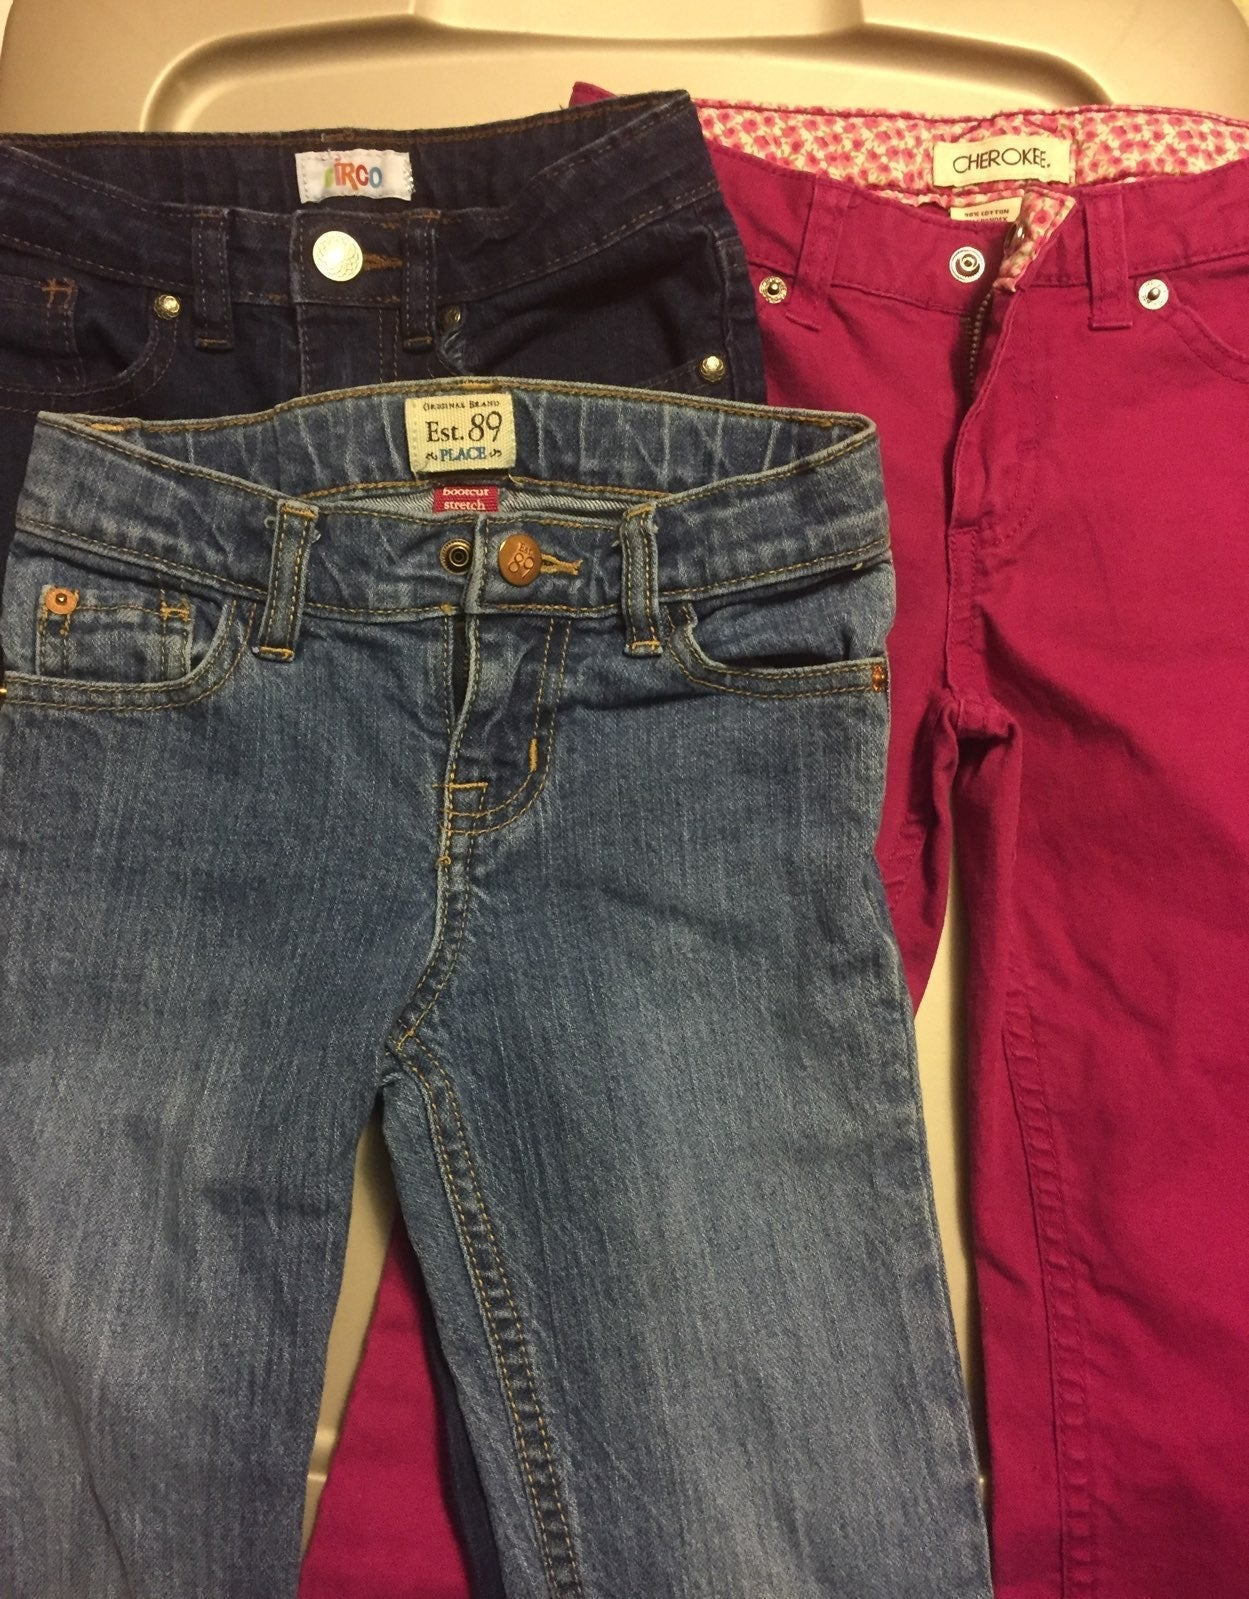 Three pairs Girls size 6 Jeans